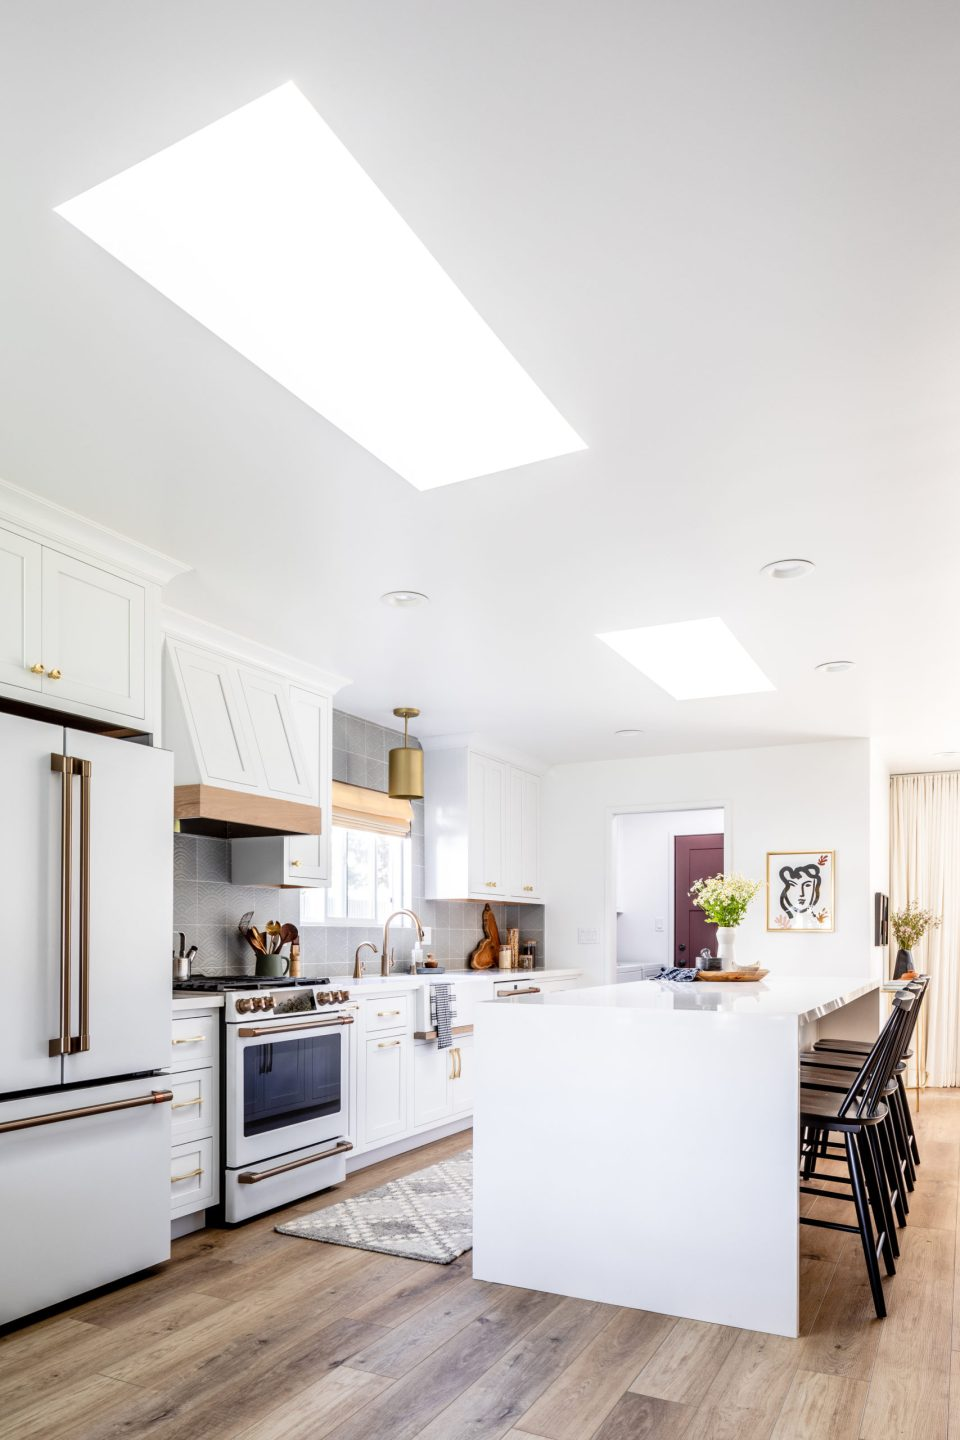 Skylights illuminate this kitchen from wall to wall